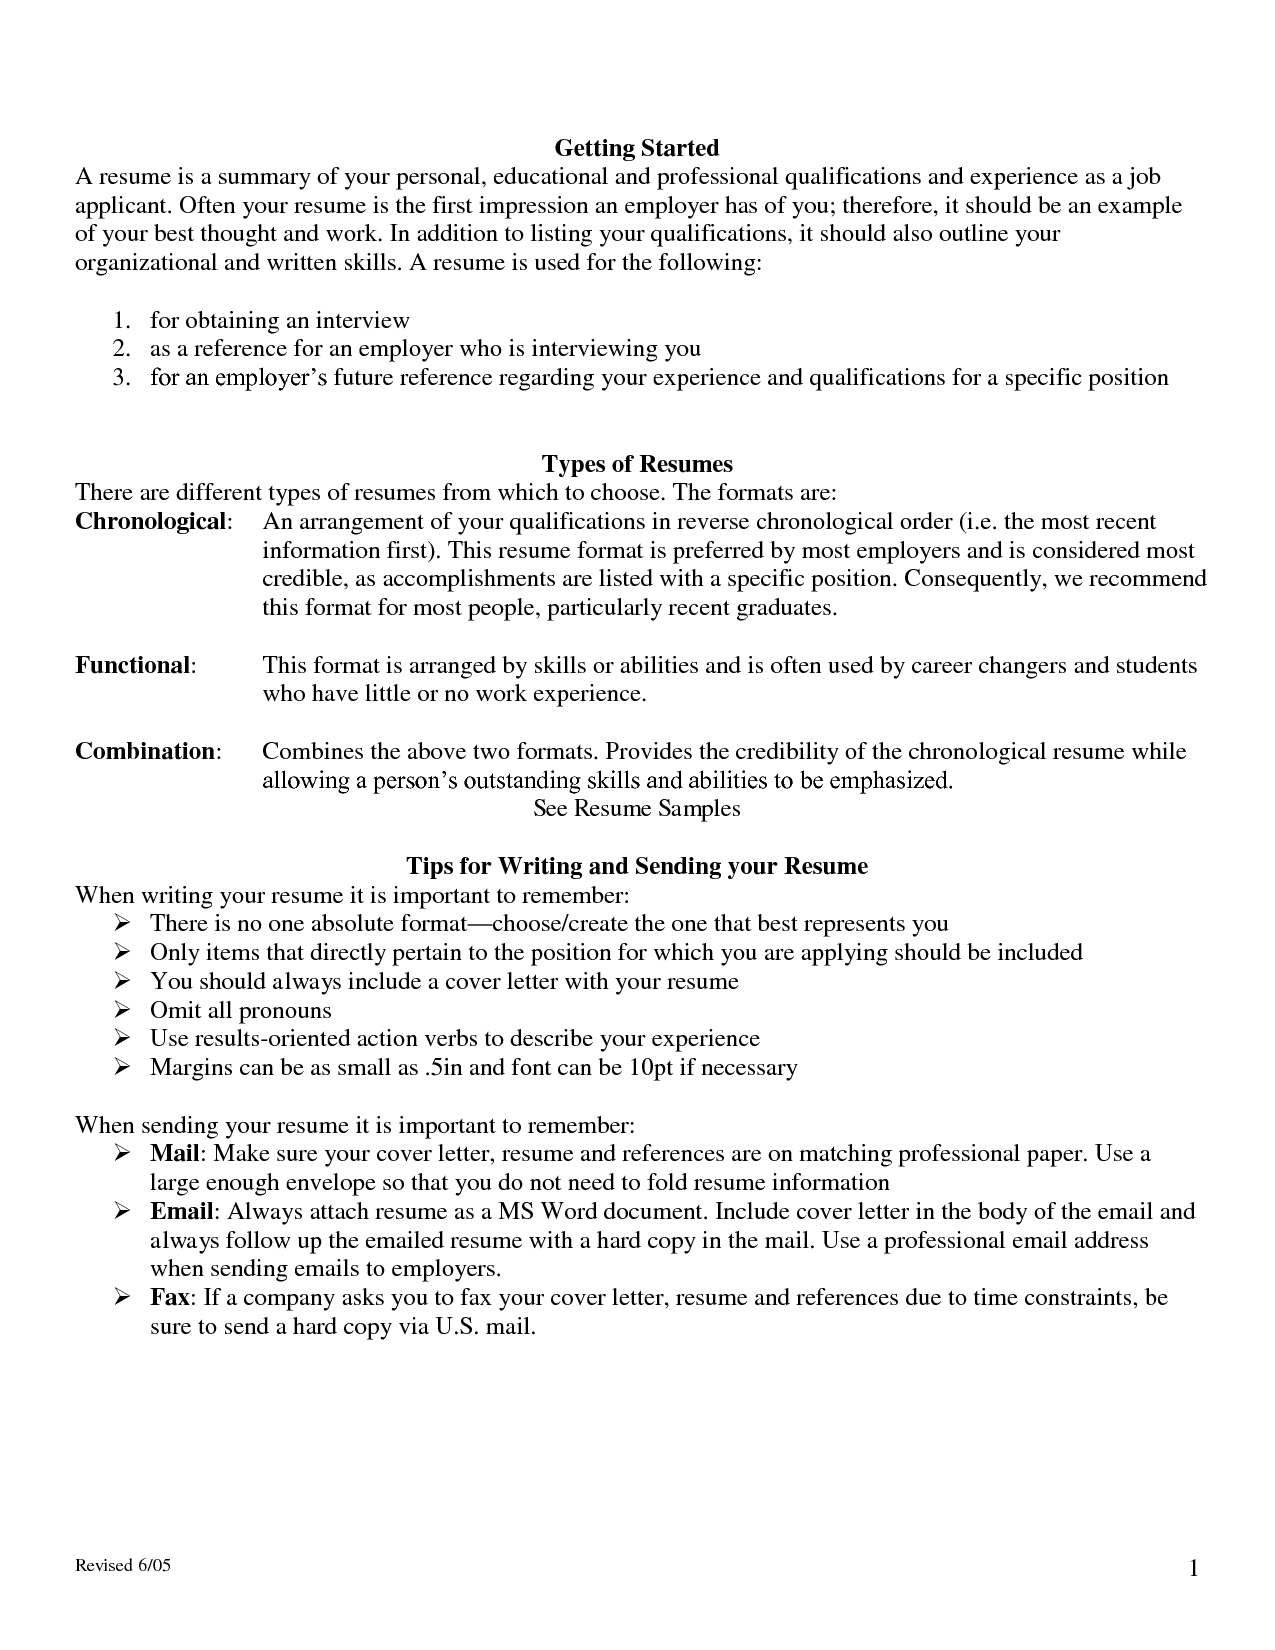 sample resume for entry level bank teller bank teller